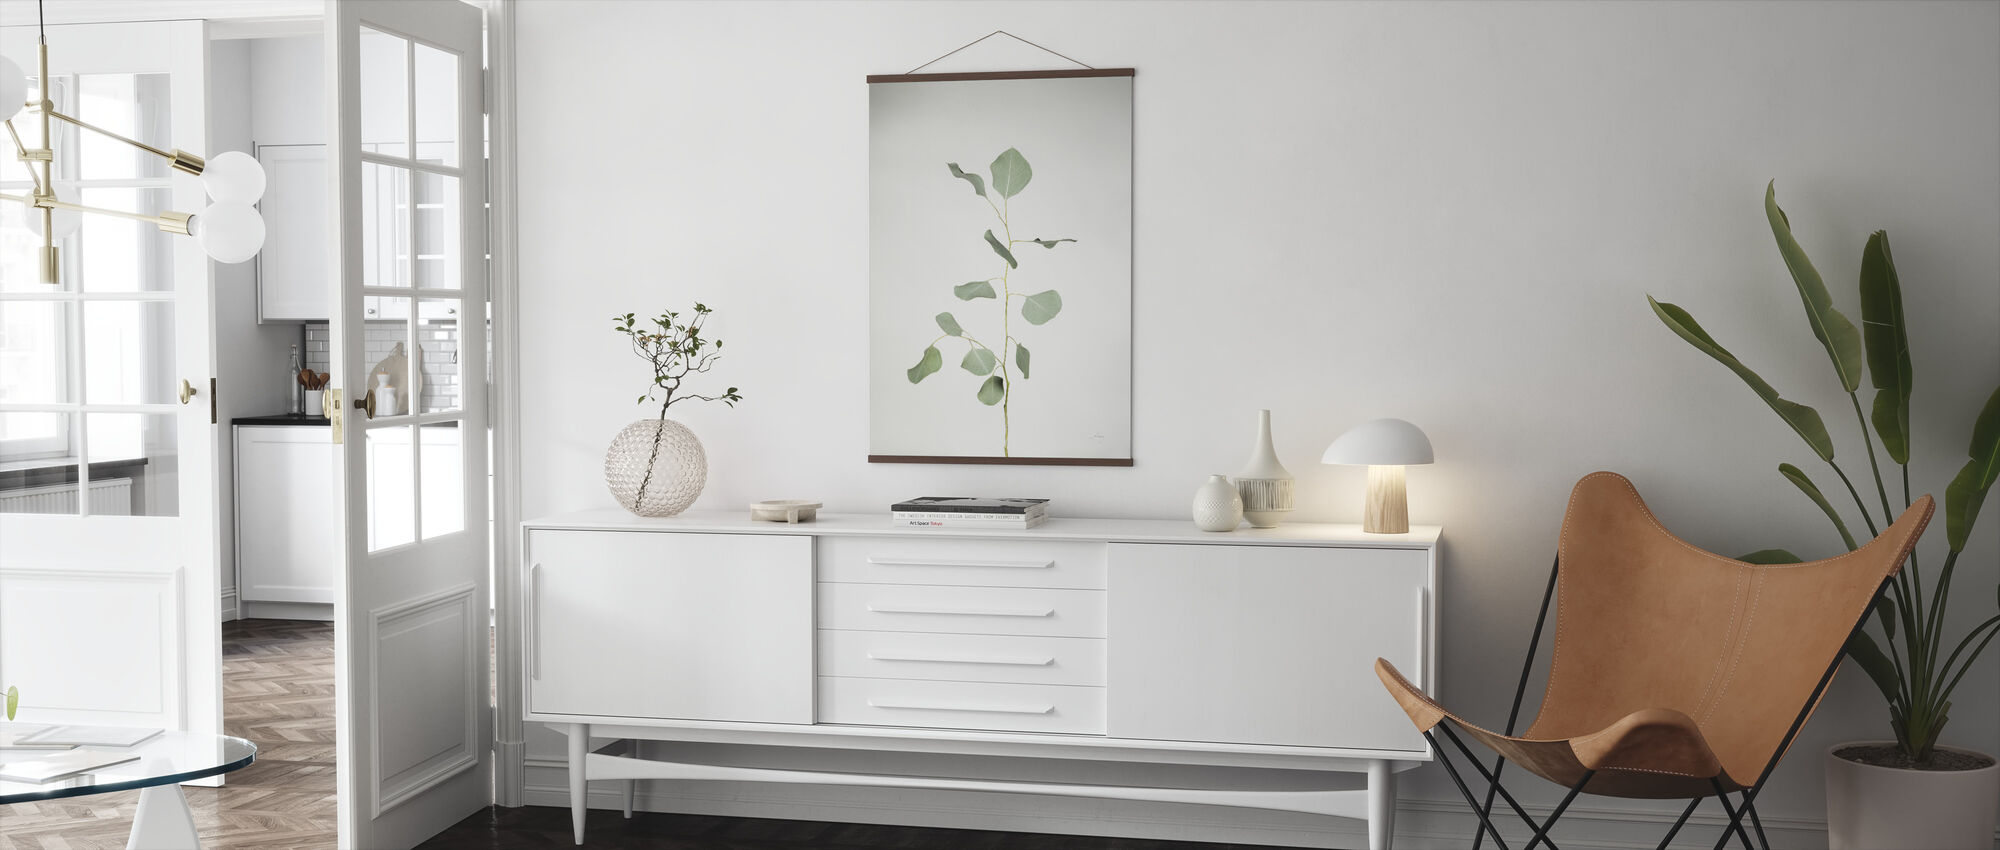 Simple Stems I - Poster - Living Room